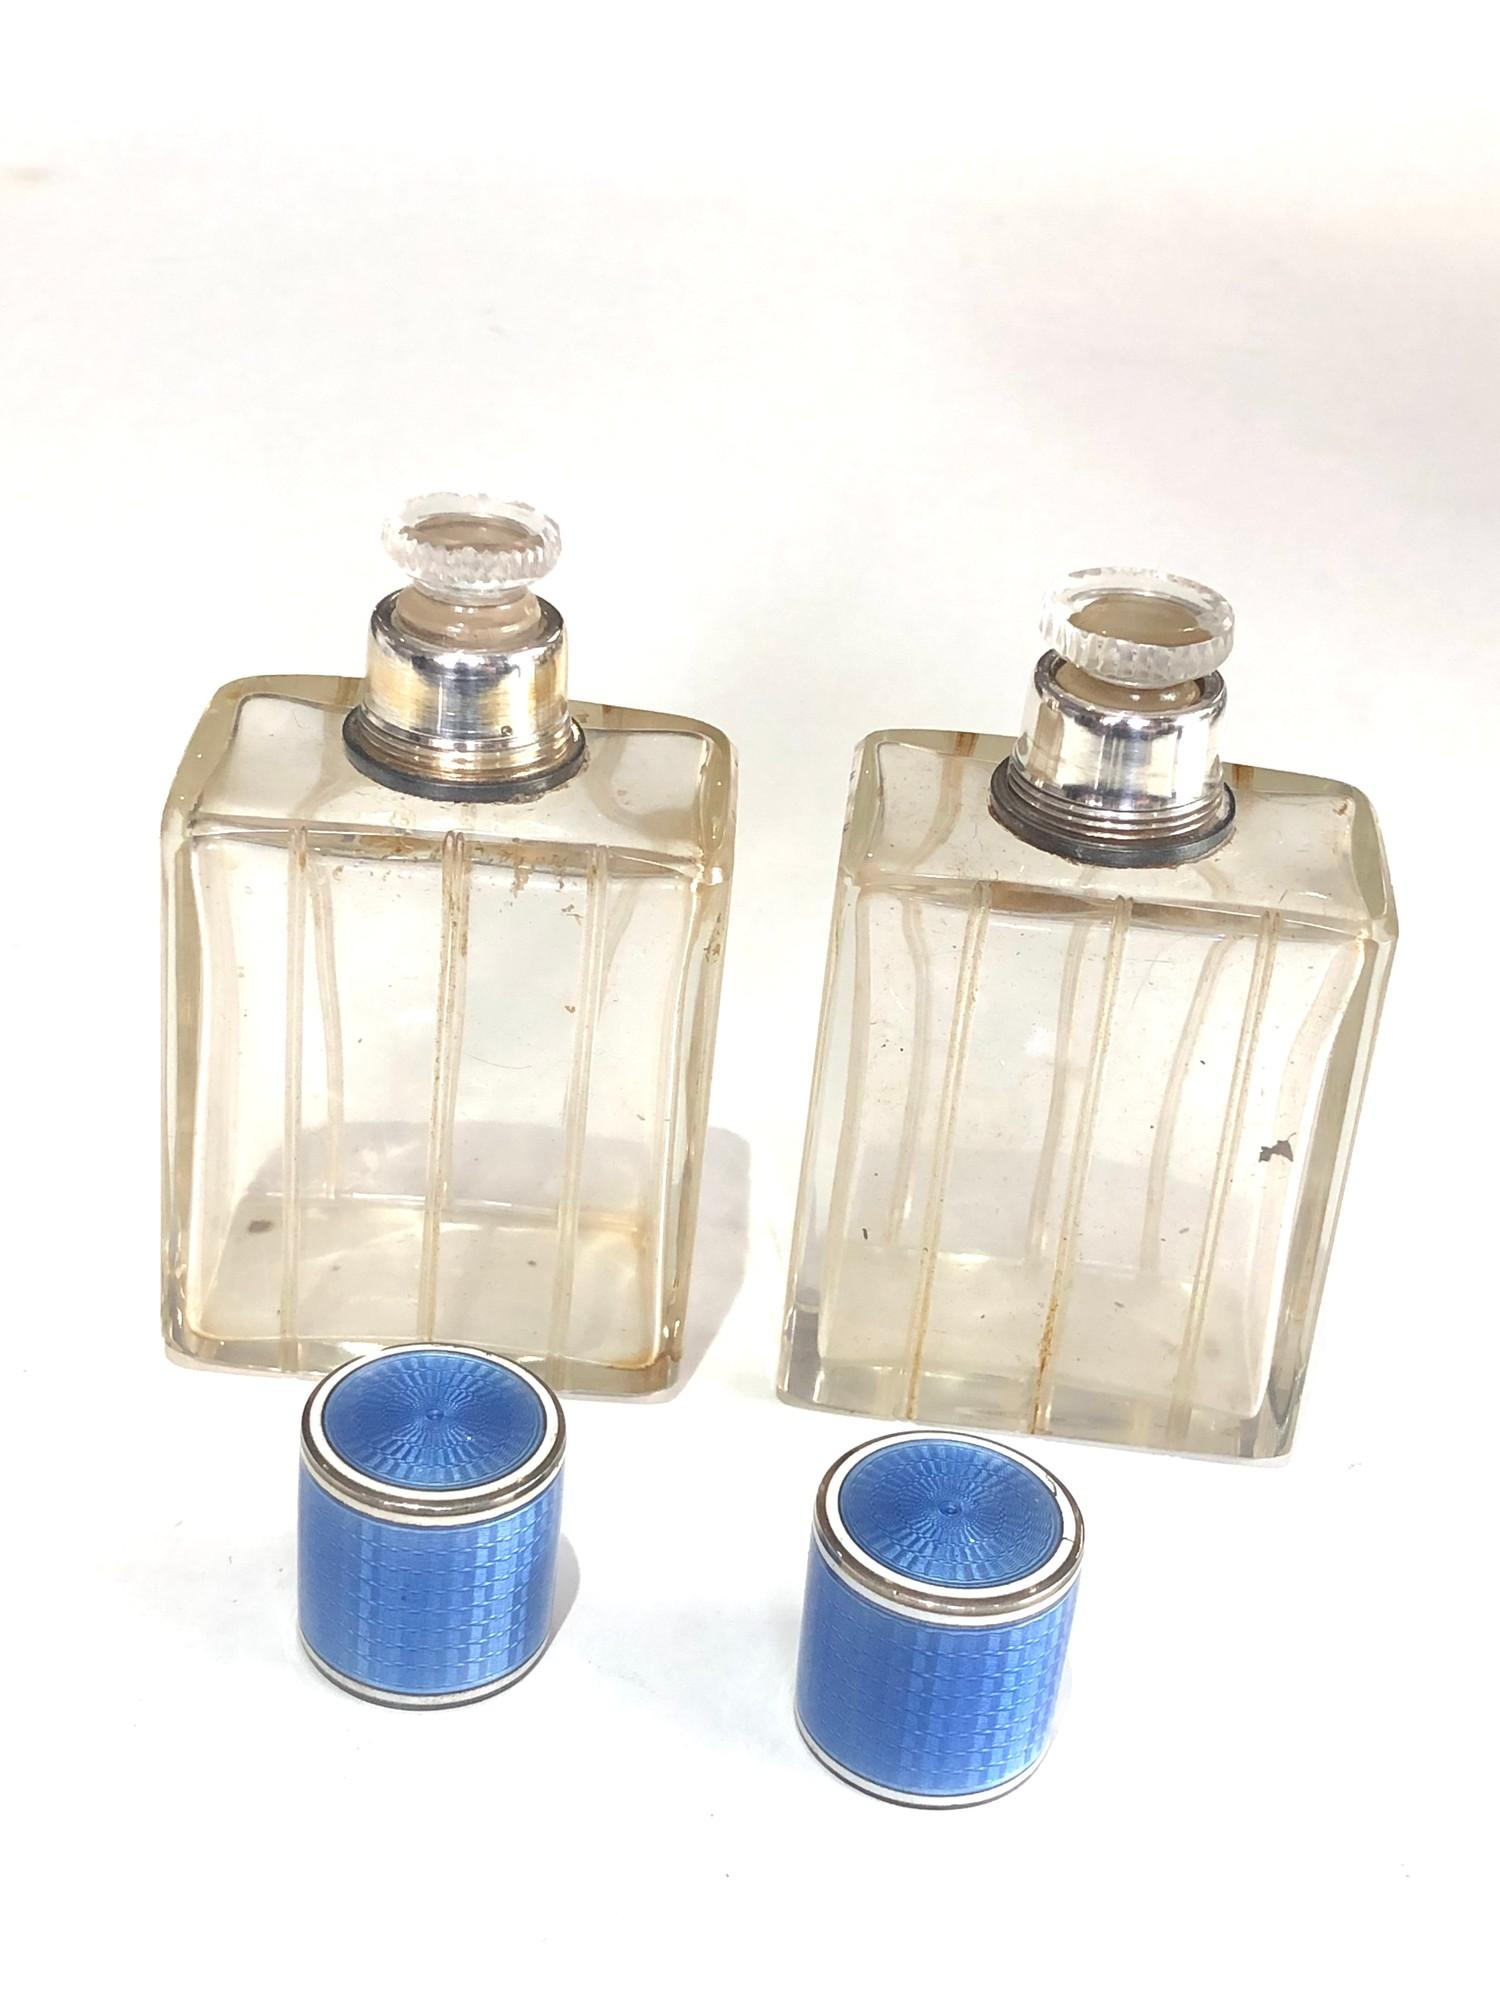 Pair of antique French silver and enamel perfume bottles complete with stoppers in good uncleaned - Image 3 of 8